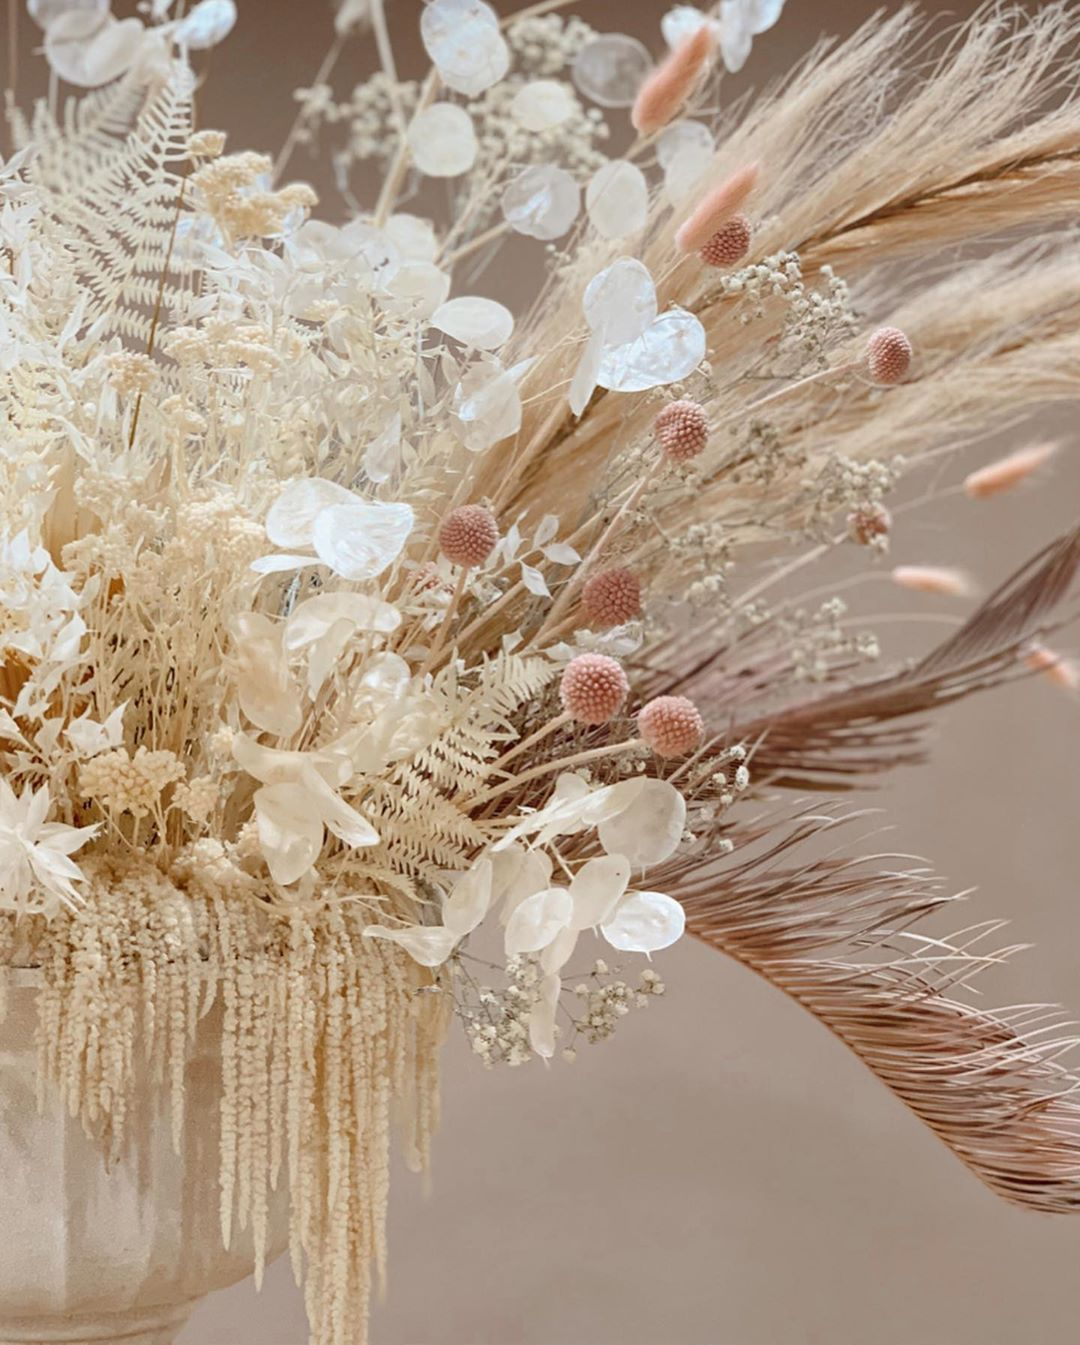 Natural Tall Dried Arrangement Dried Flower Bouquet Dried Flower Arrangement Neutral Palette Flower Decor Real Dried Flowers Pampas Grass Dried Flower Bouquet Dried Flower Arrangements Flower Decorations